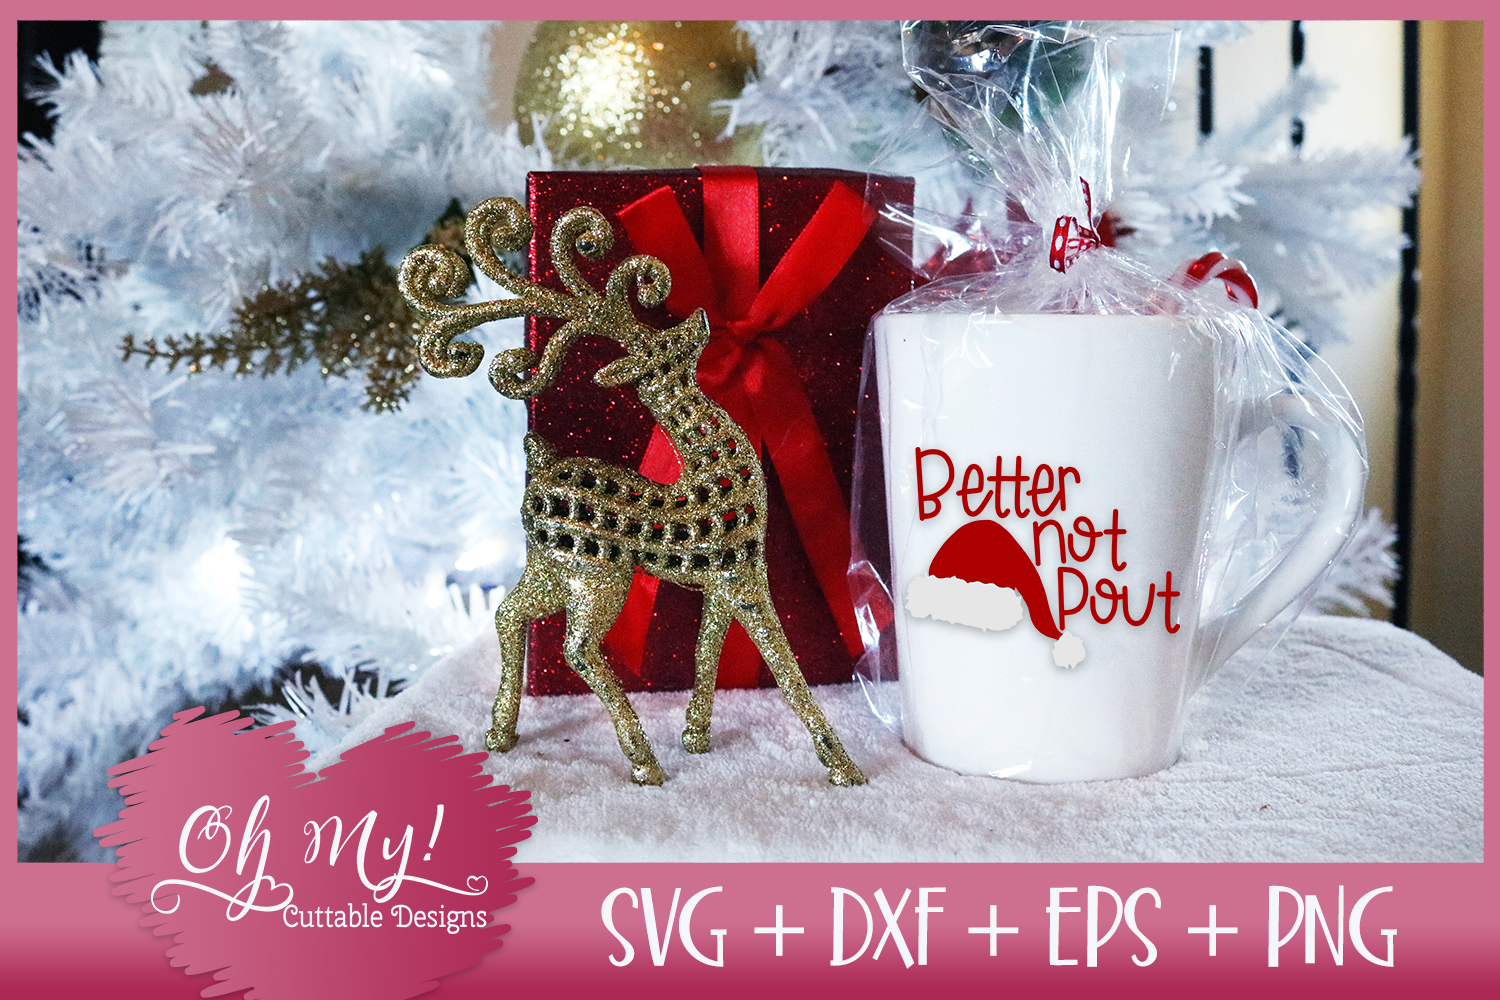 Better Not Pout - SVG EPS DXF PNG Cutting File example image 2